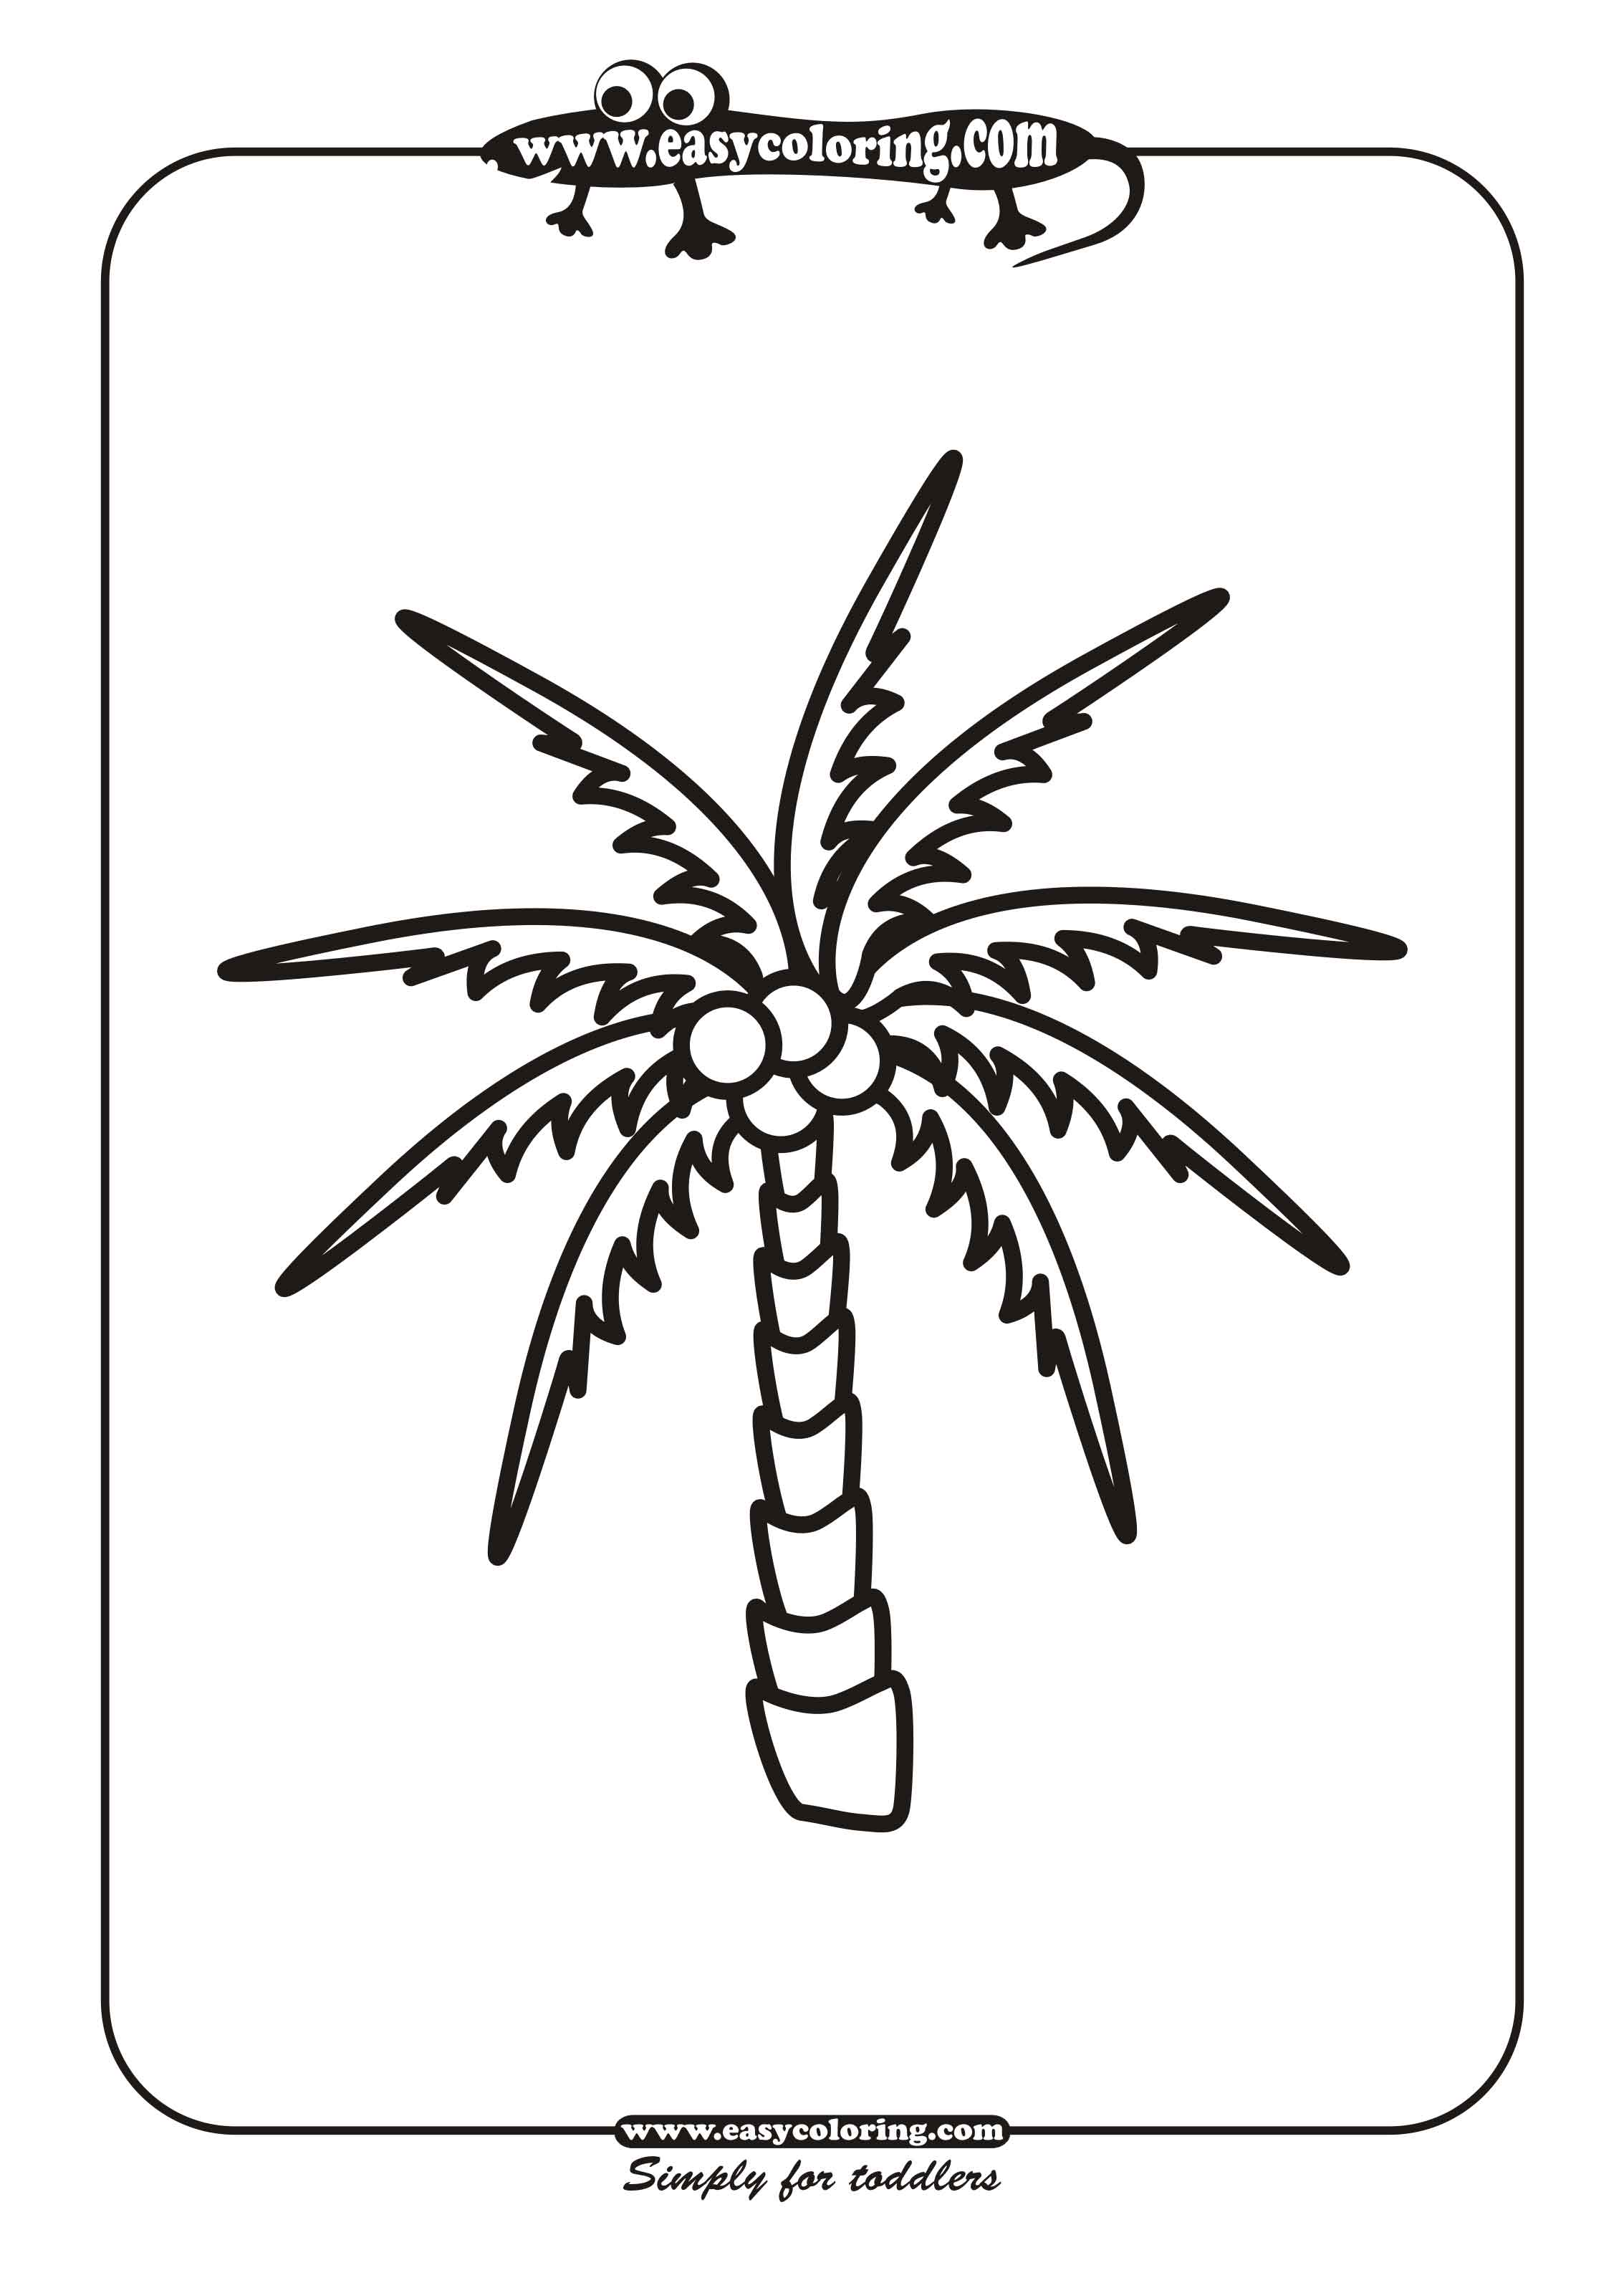 tree twelve simple trees easy coloring pages for toddlers